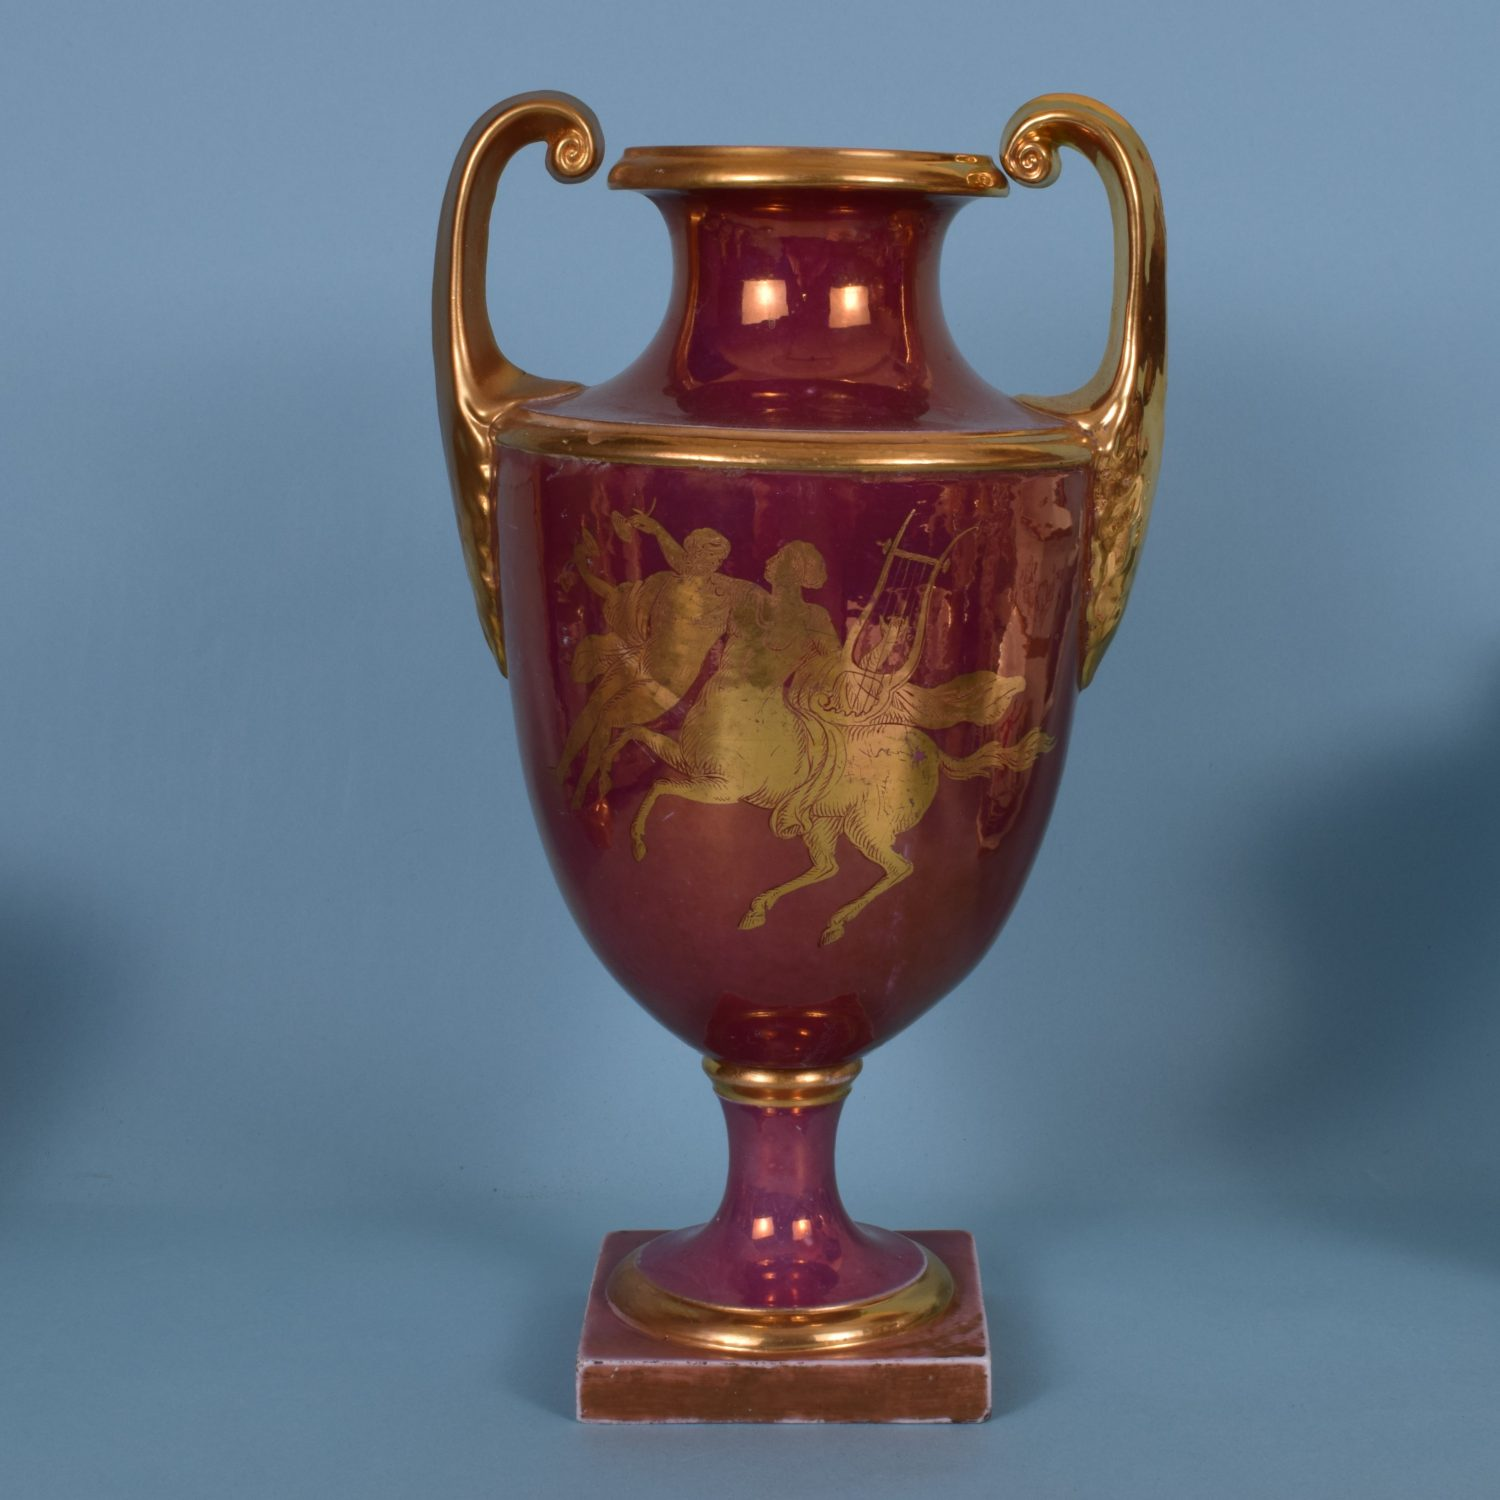 Pink Lustre & Gilt English Porcelain Large Vase, c1810